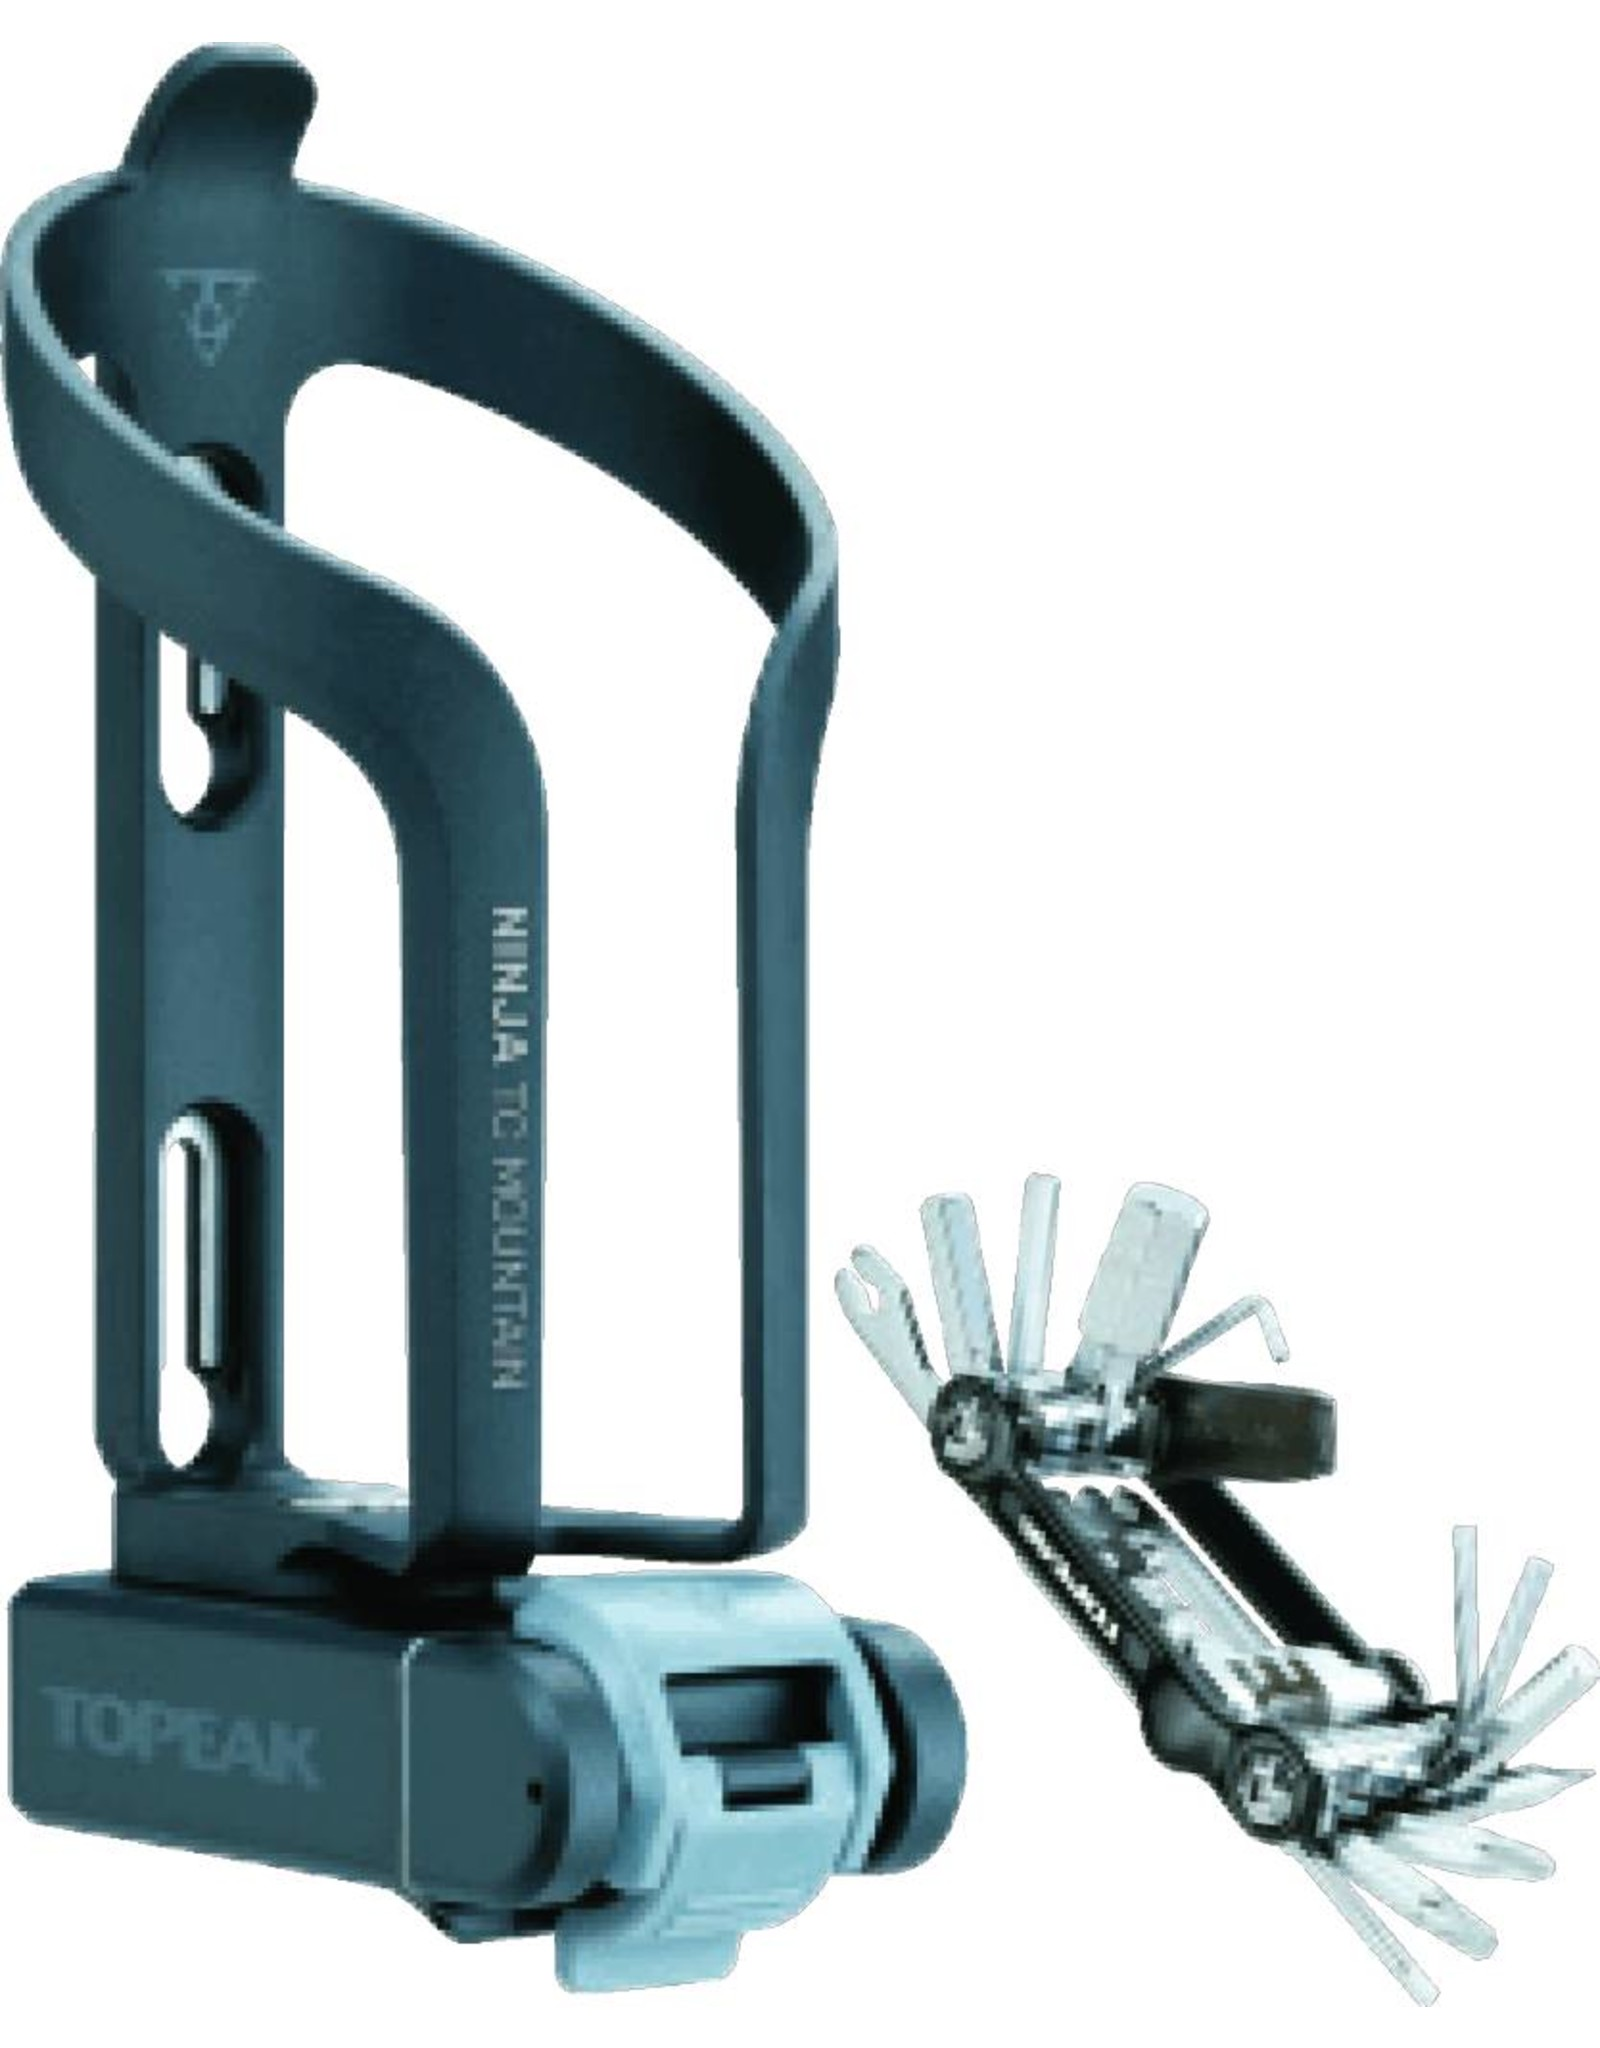 Topeak Ninja TCM Cage and Multi-Tool Kit